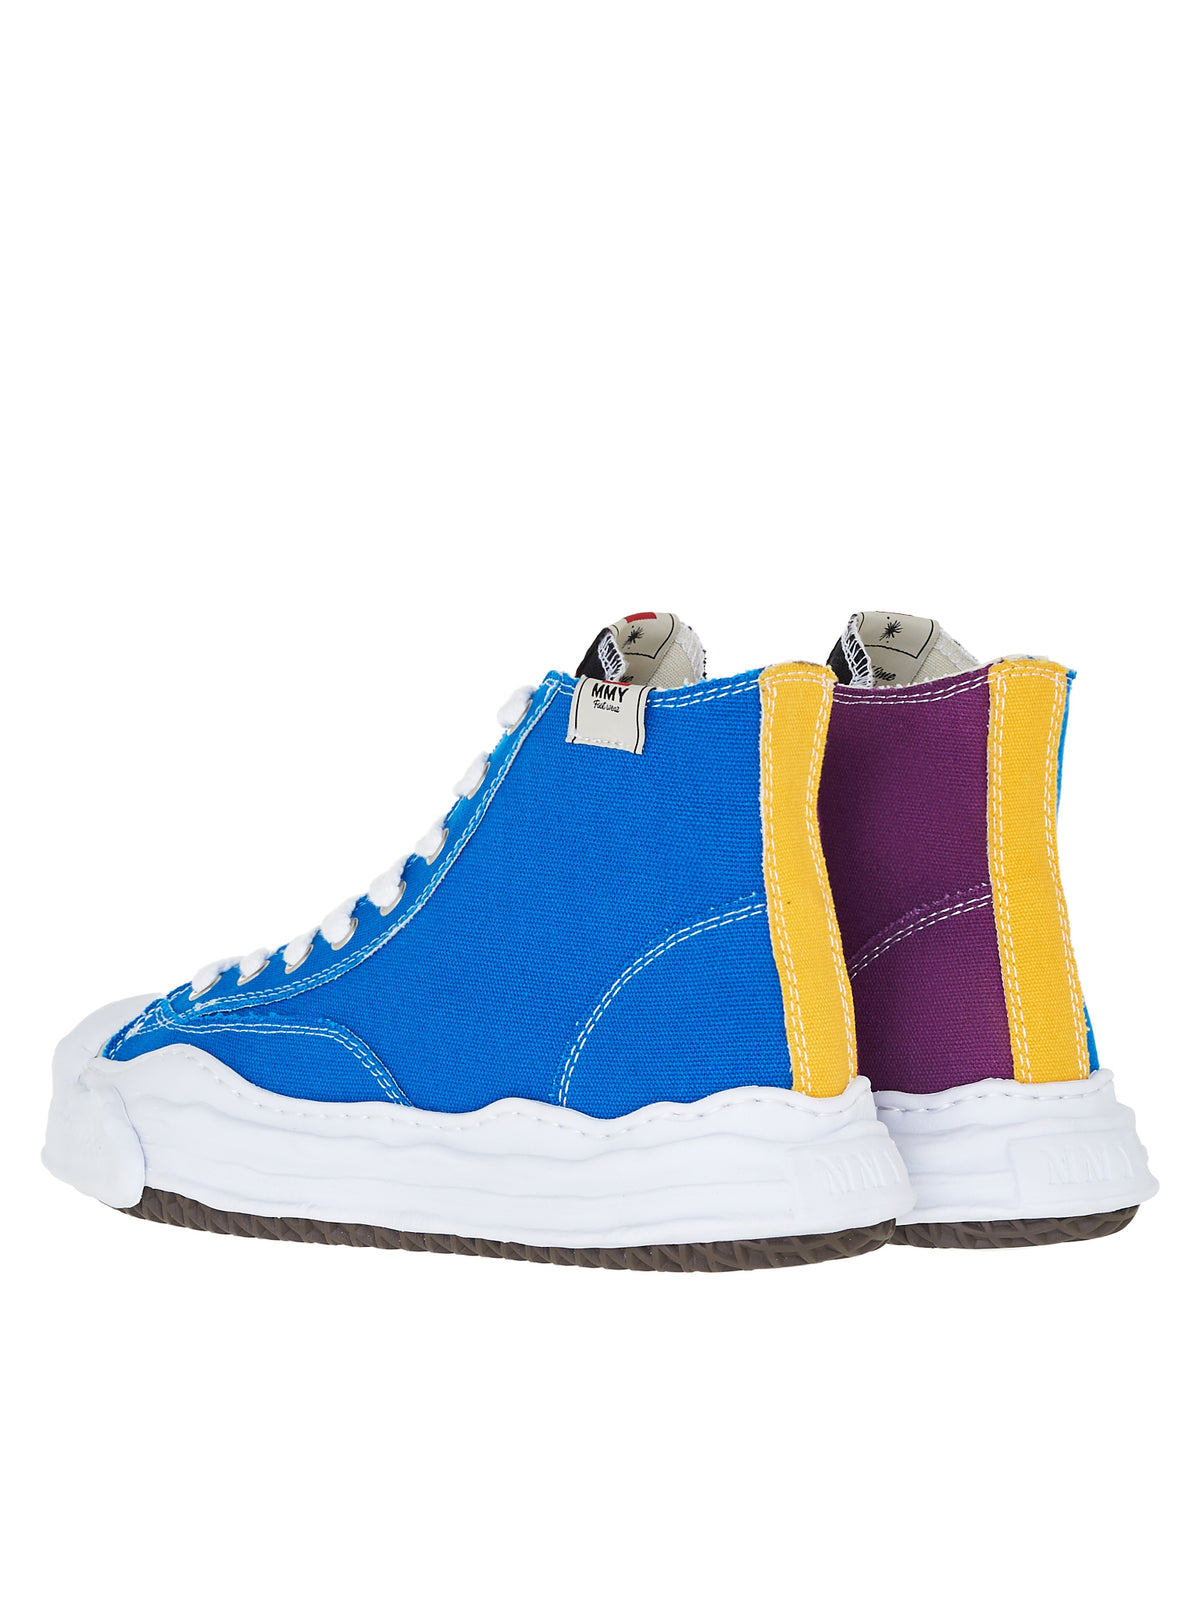 Original Sole Hi-Top Sneakers (A05FW701-BLUE-PURPLE)